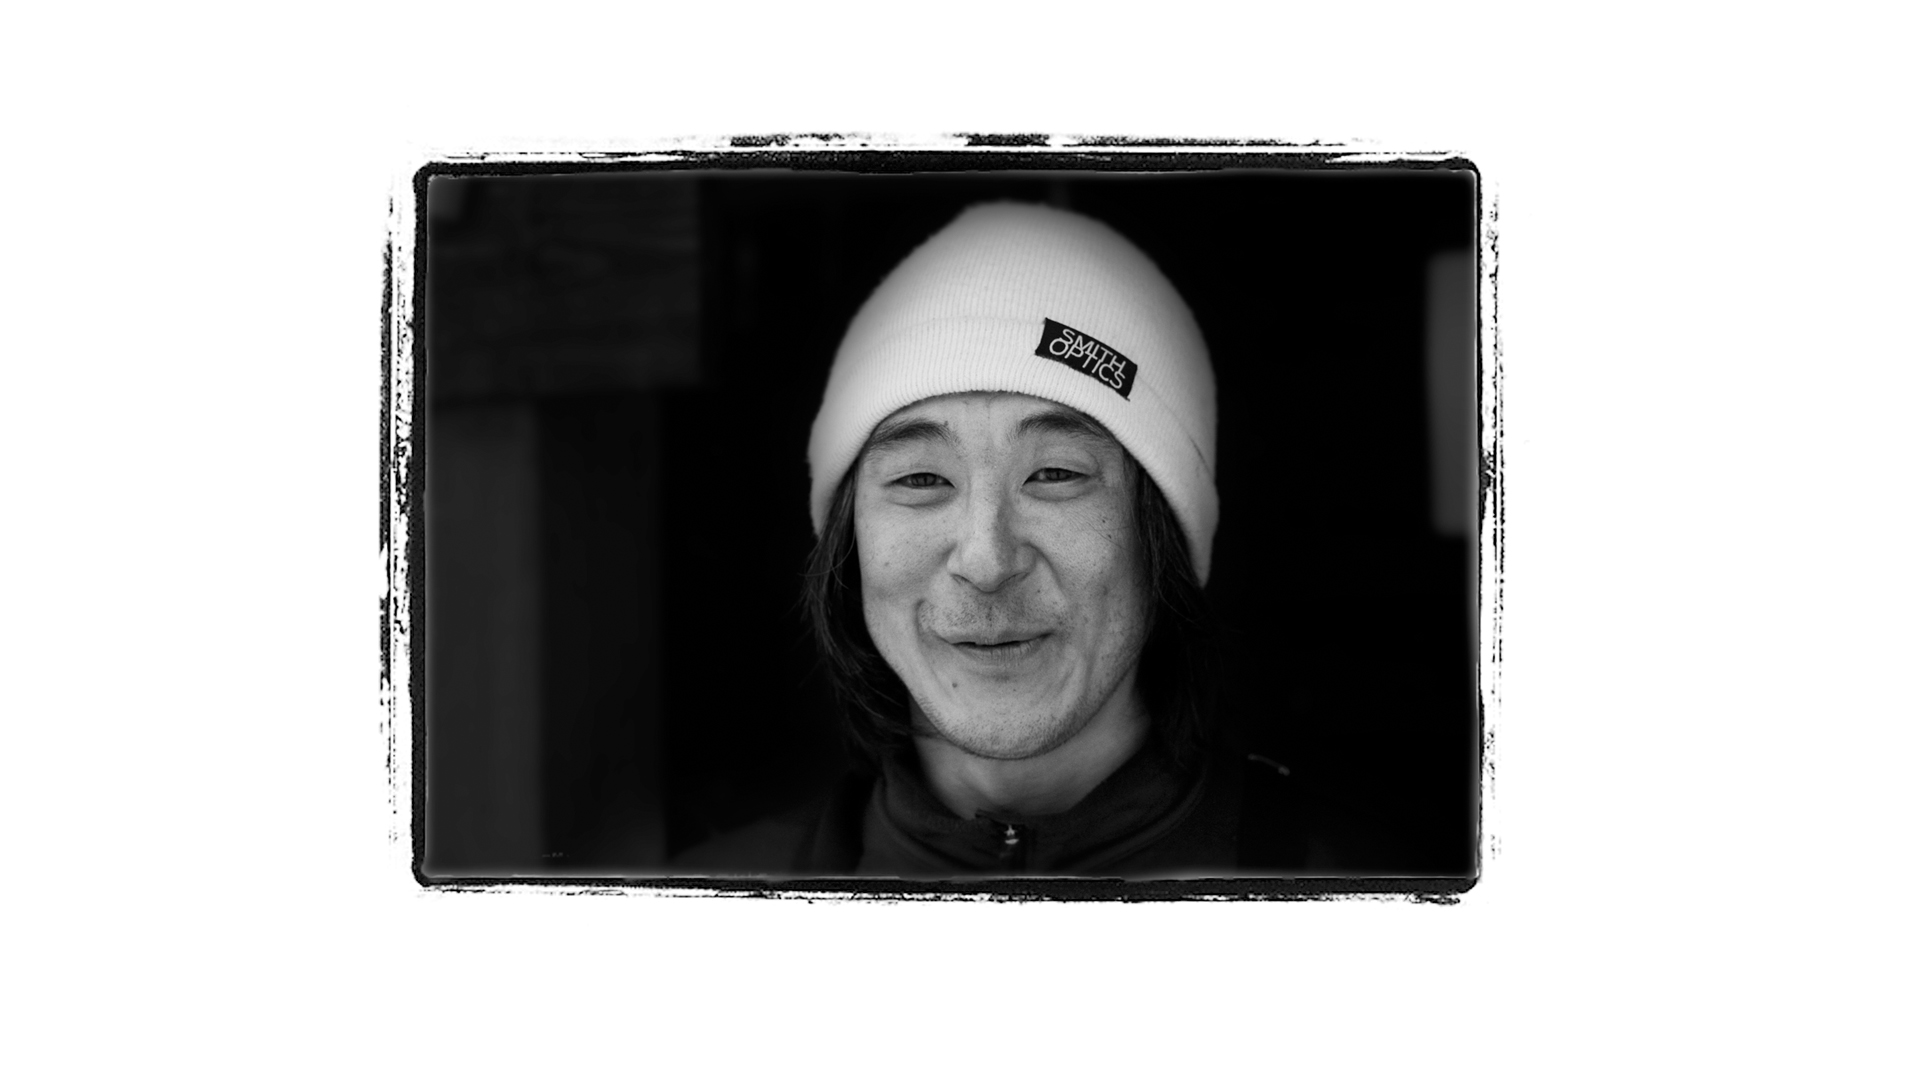 Makoto Yamada. A life saver. Marko is one of the senior Guides from the Powder Company, Niseko's premier guiding service and the crew who really looked after me in the BC. Marko has shown me things and places that as a snowboarder I'll never forget and as a film maker I'll be indebted to him forever.